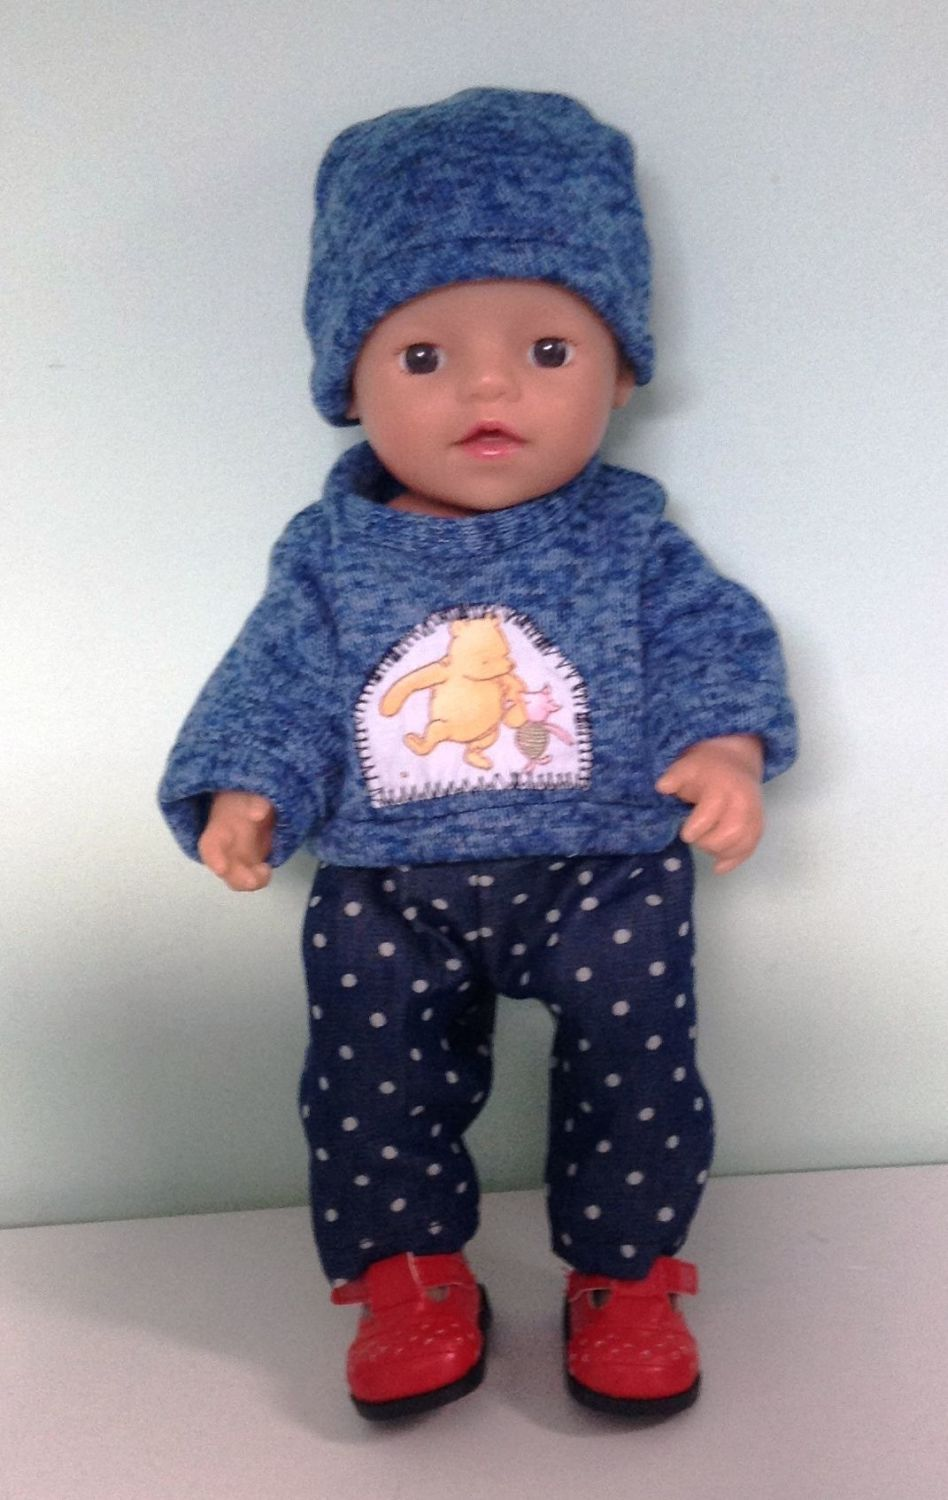 Doll's jeans, sweater and hat set made to fit a 12 inch high baby boy doll